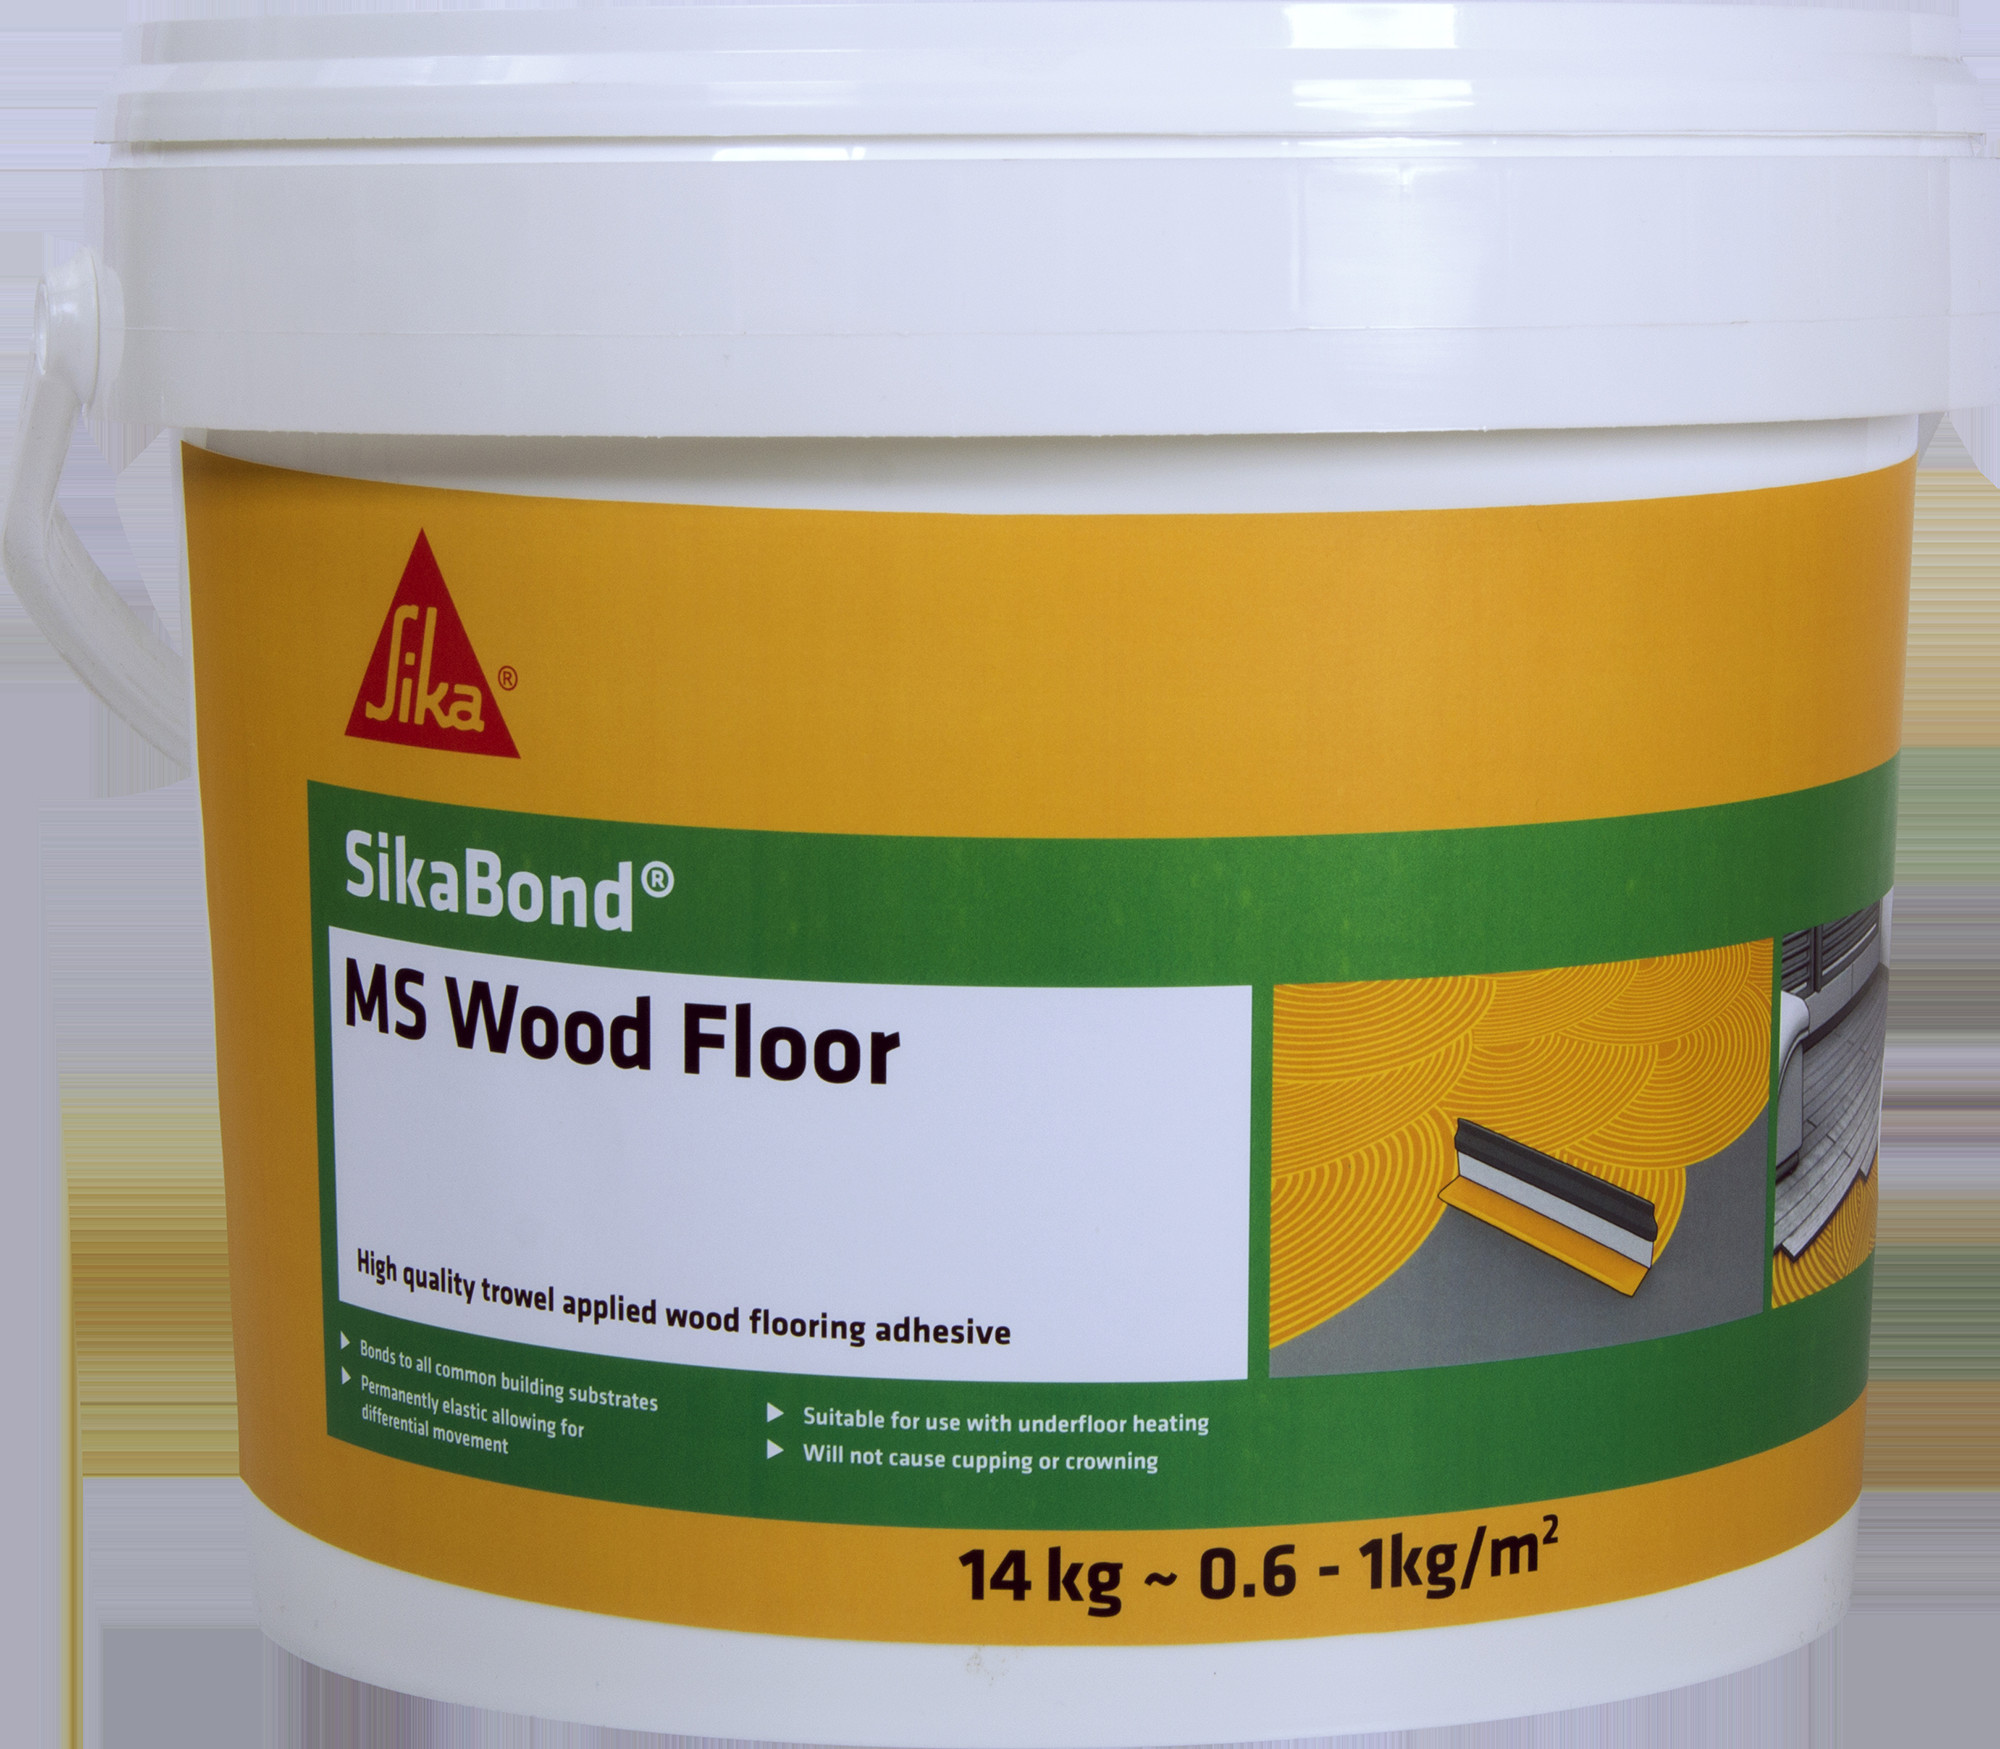 Sika Hardwood Floor Glue Of Sikabond Ms Wood Floor Everbuild Regarding A High Quality Trowel Applied Ms Adhesive for Bonding Wooden Floors to All Common Substrates the formulation is Completely Water and solvent Free thereby